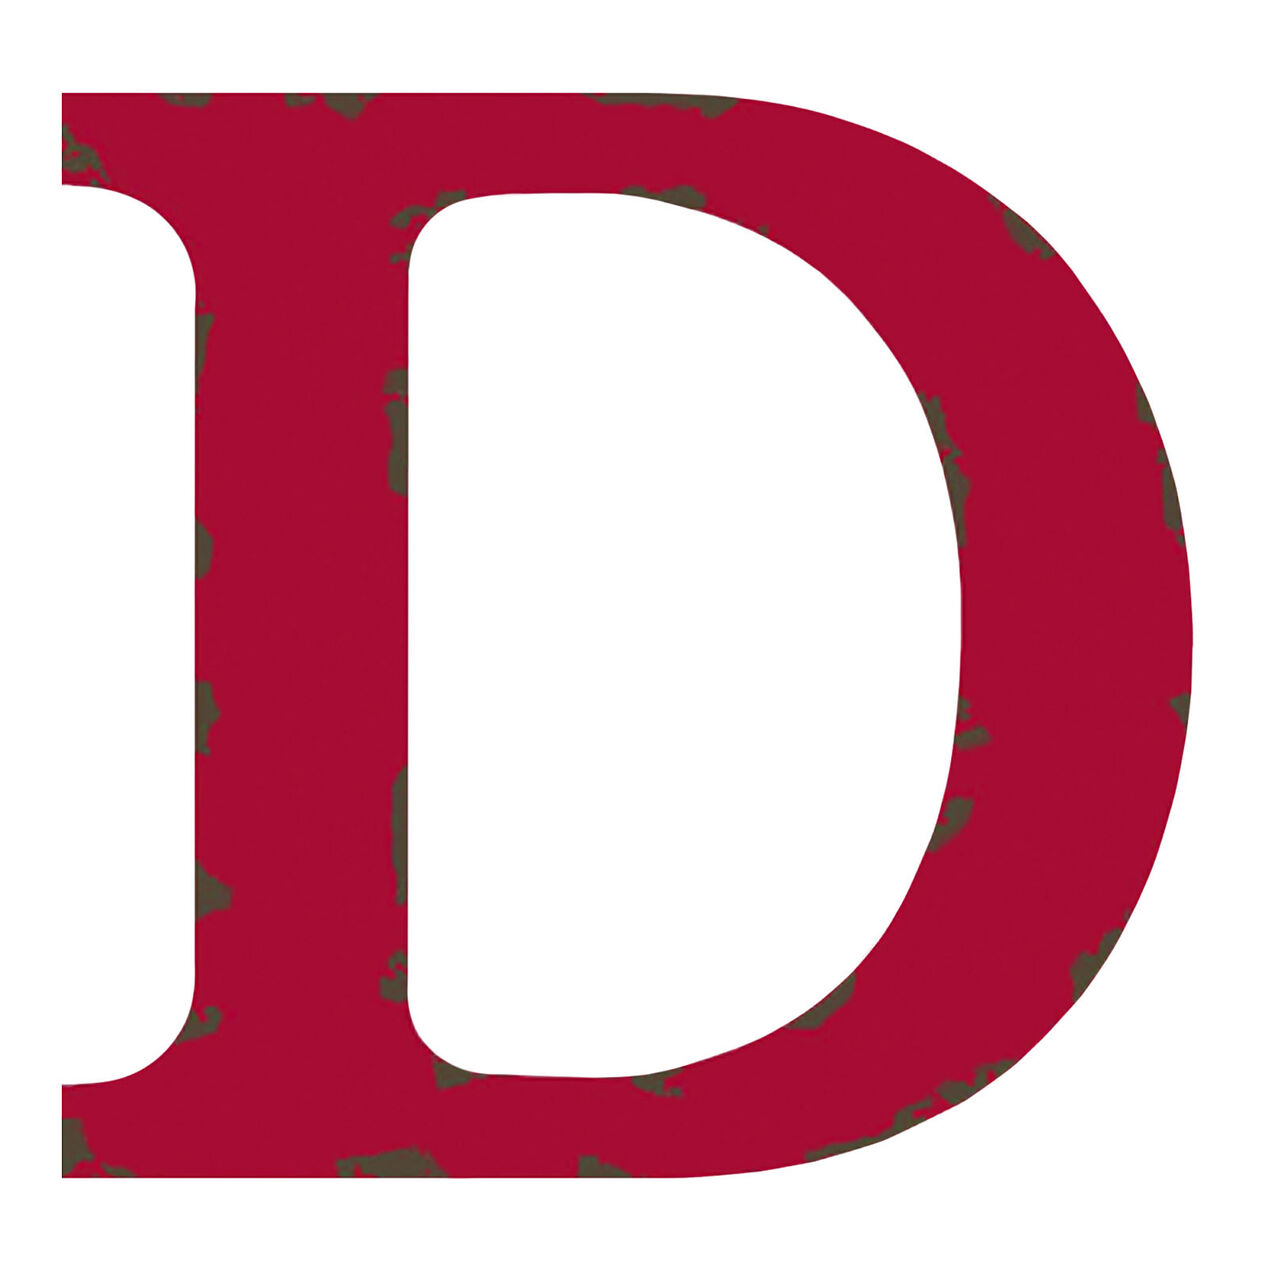 Distressed Red Letter D, 12-in. - At Home Red Letter D